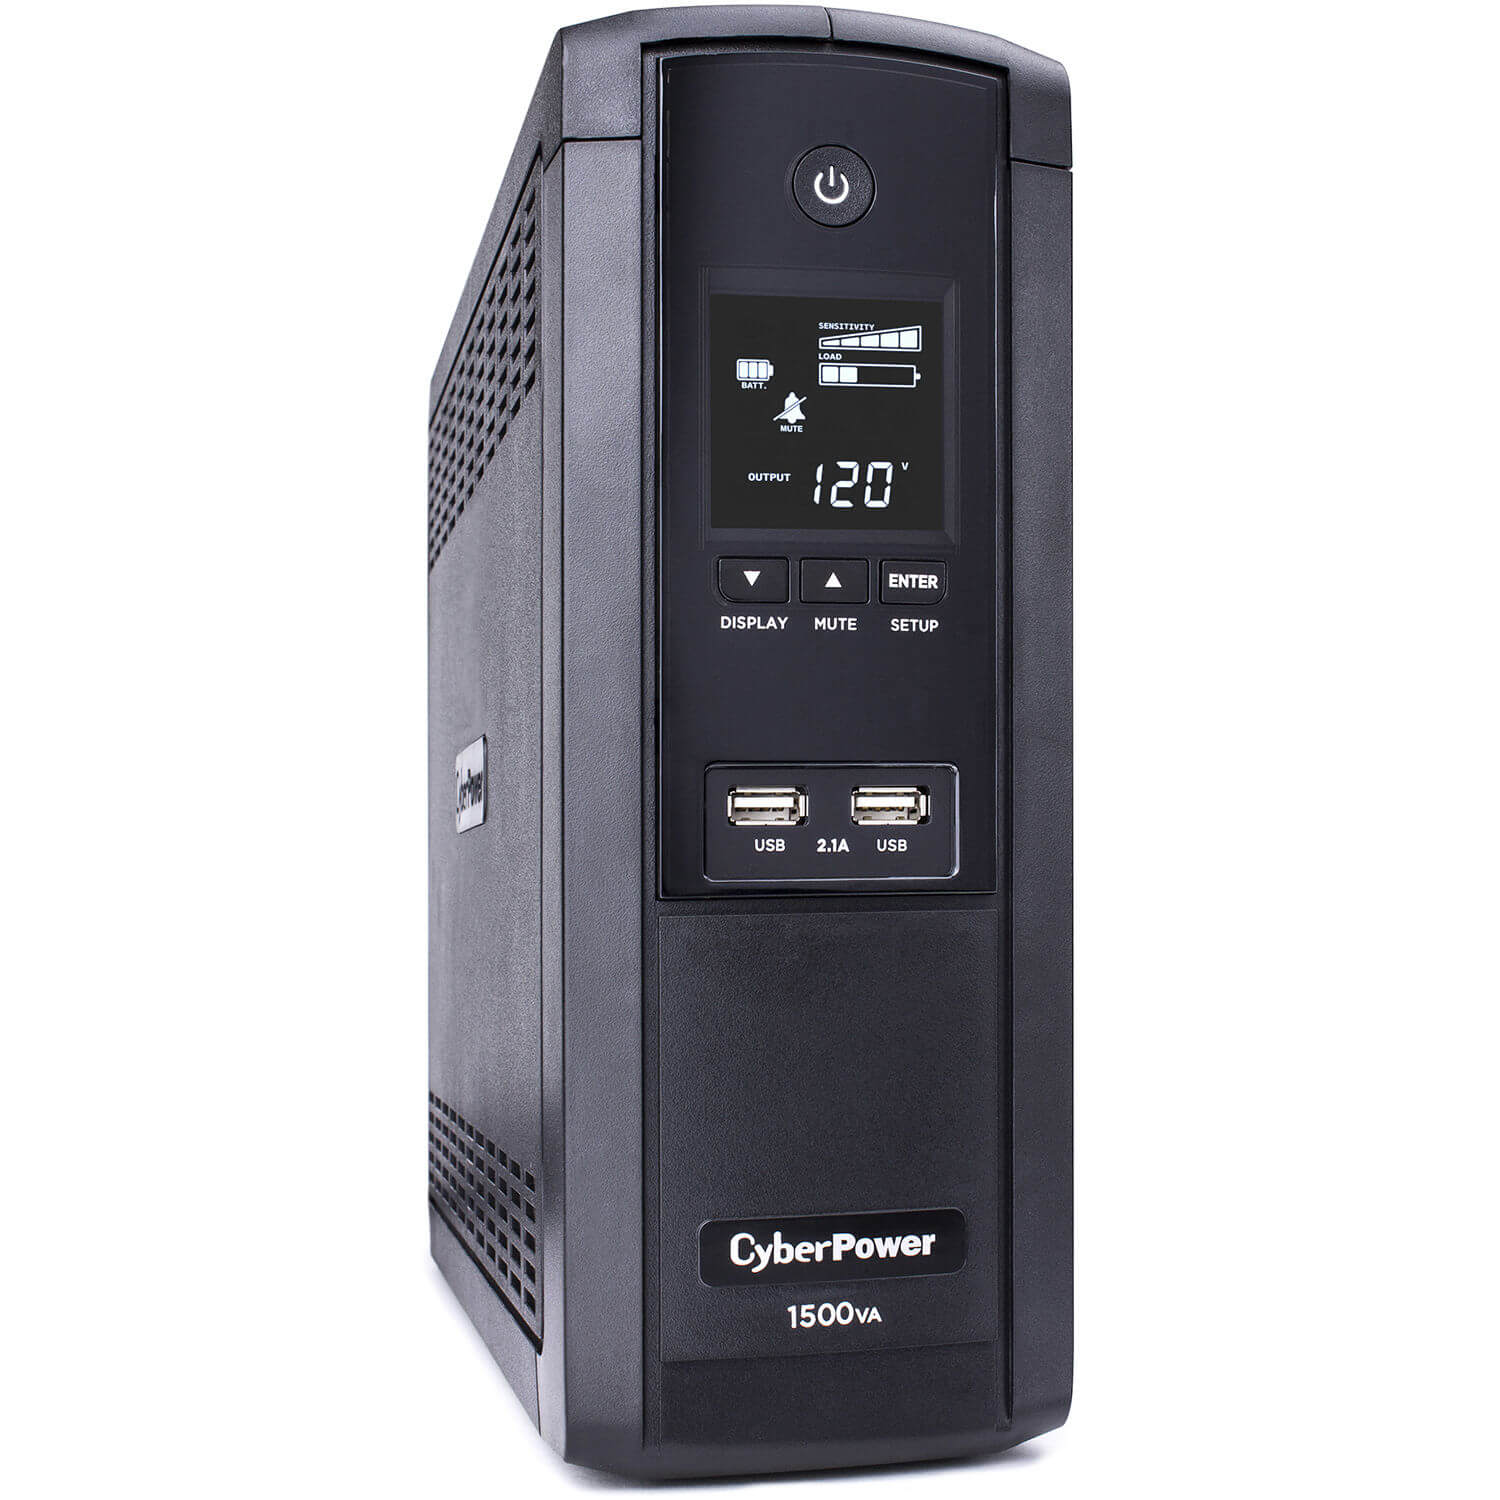 CyberPower BRG1500AVRLCD Intelligent LCD